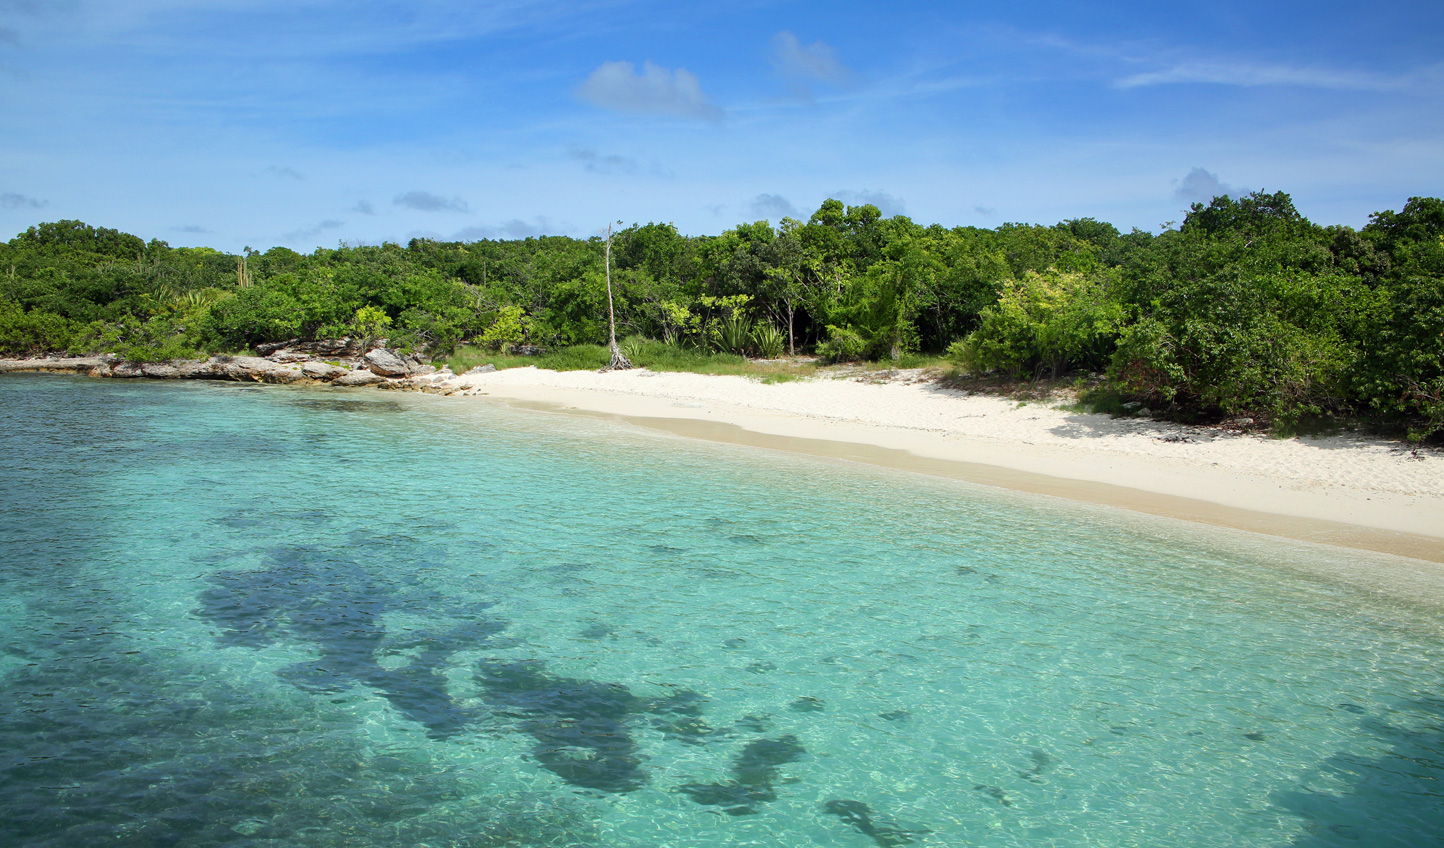 Escape to the uninhabited Green Island and walk its sandy shores in total seclusion